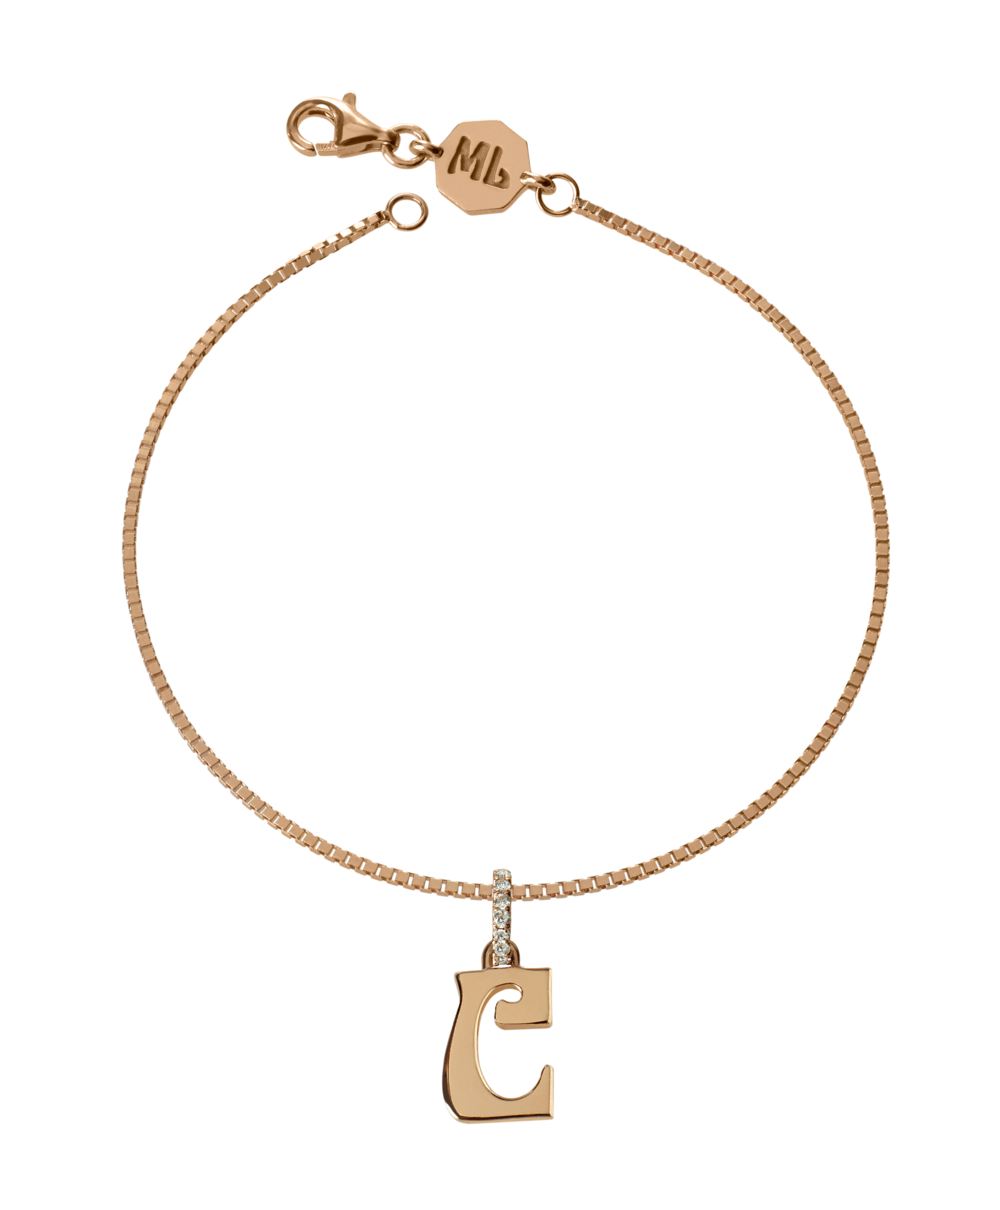 C_Rose-Gold-Bracelet_path.png